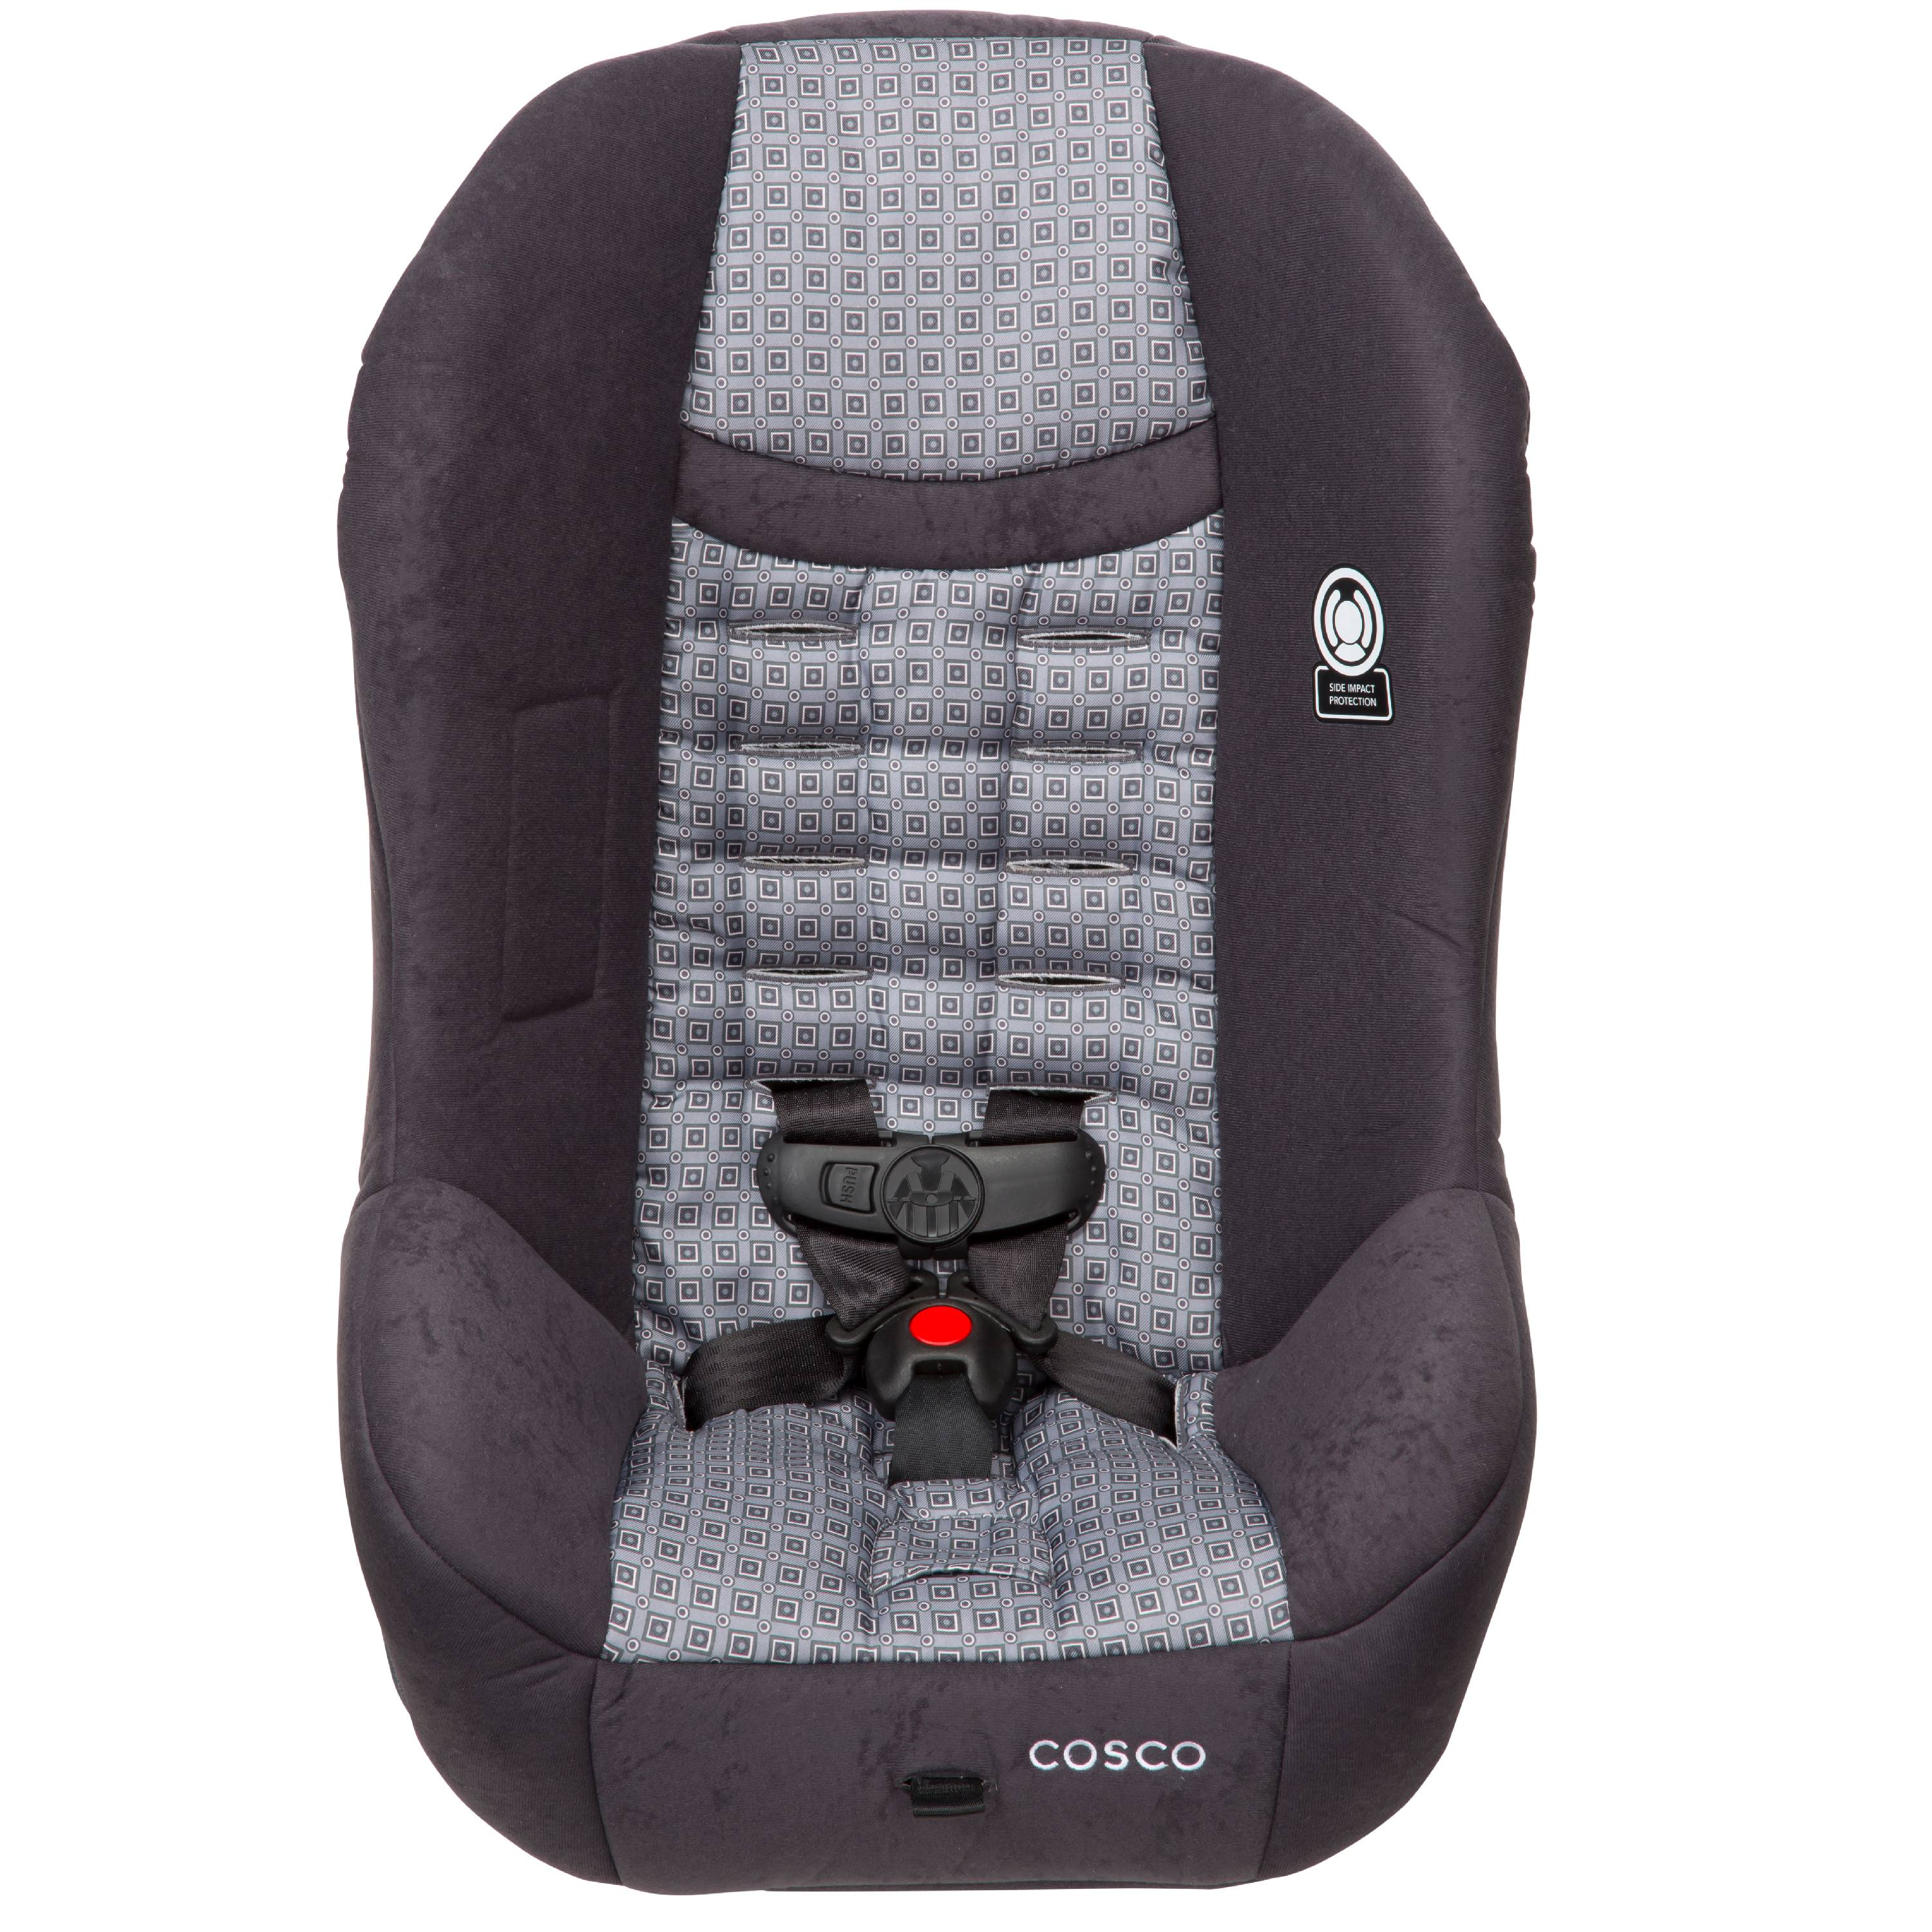 New Cosco Scenera NEXT Convertible 5 Point Harness Plane Car Seat Renaissance